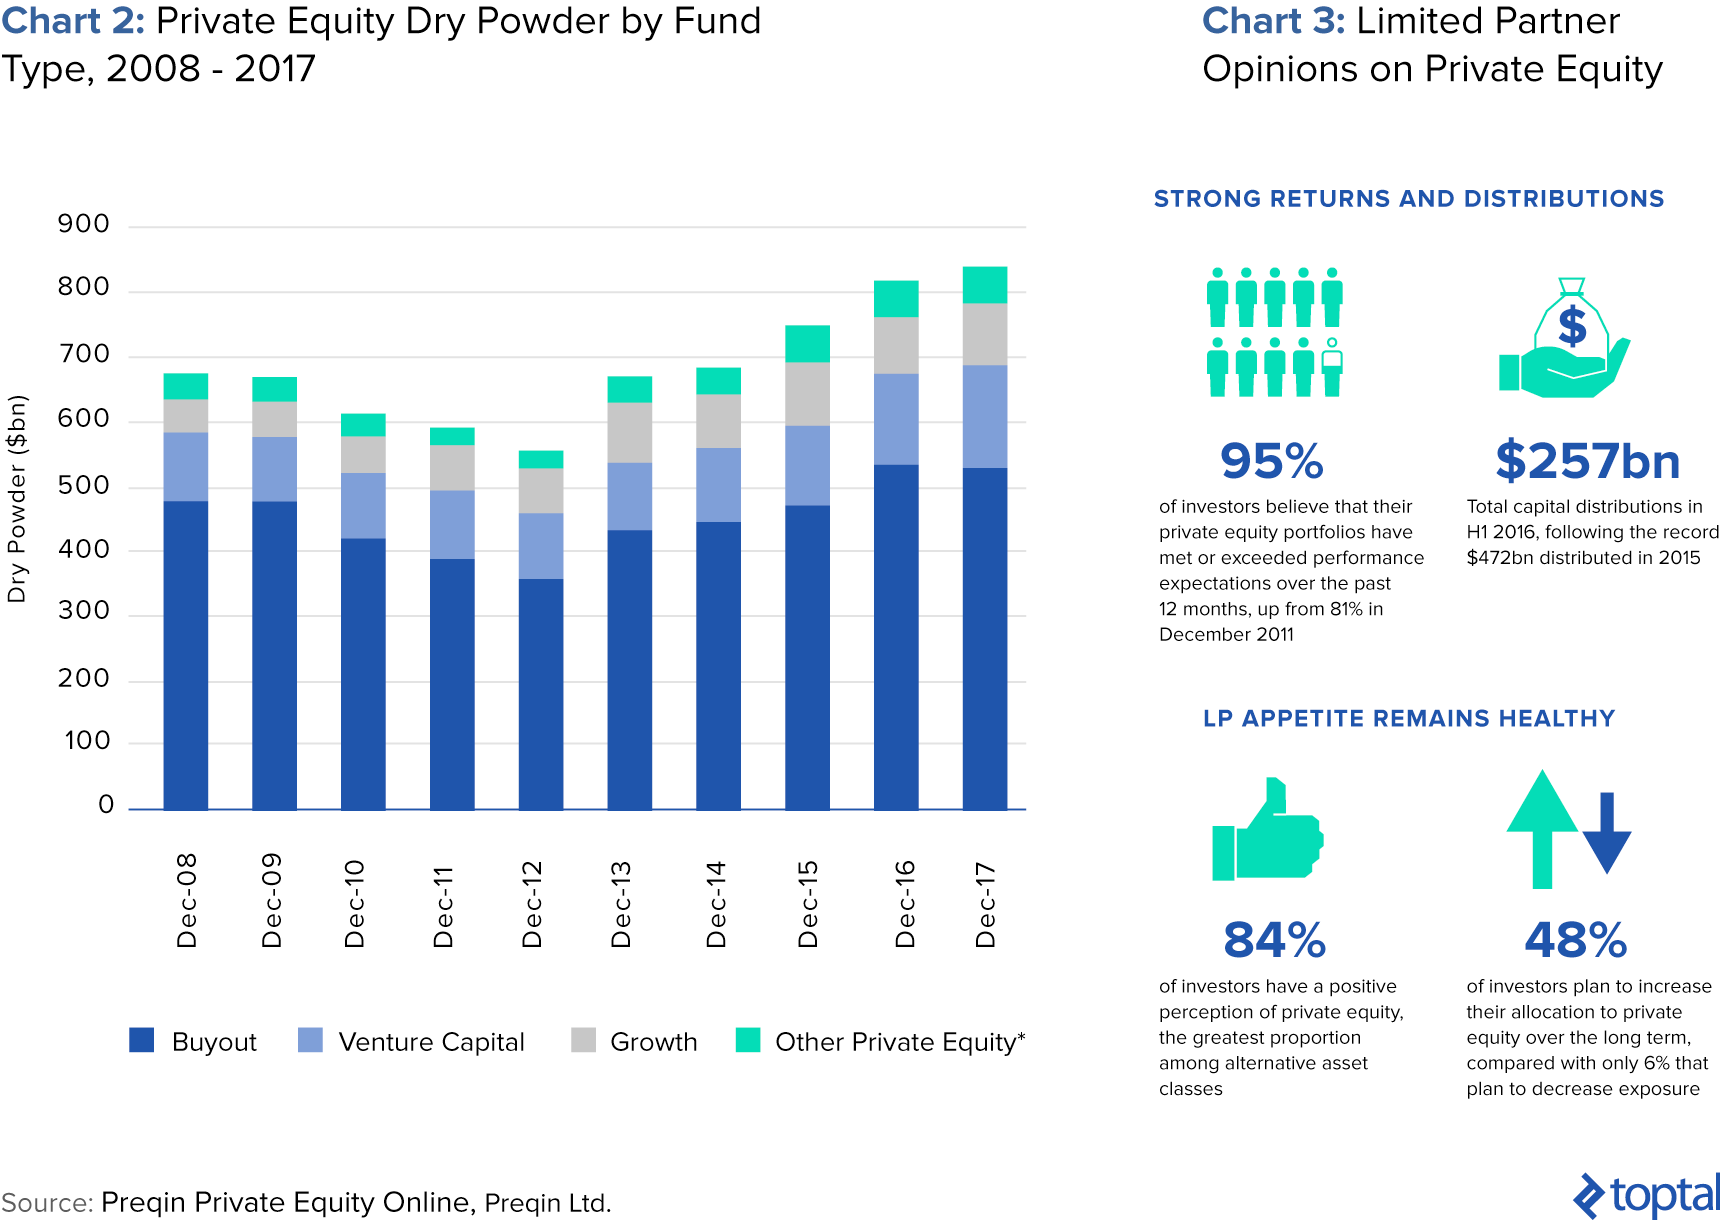 Private Equity Dry Powder by Fund Type and Limited Partners Opinion on Private Equity